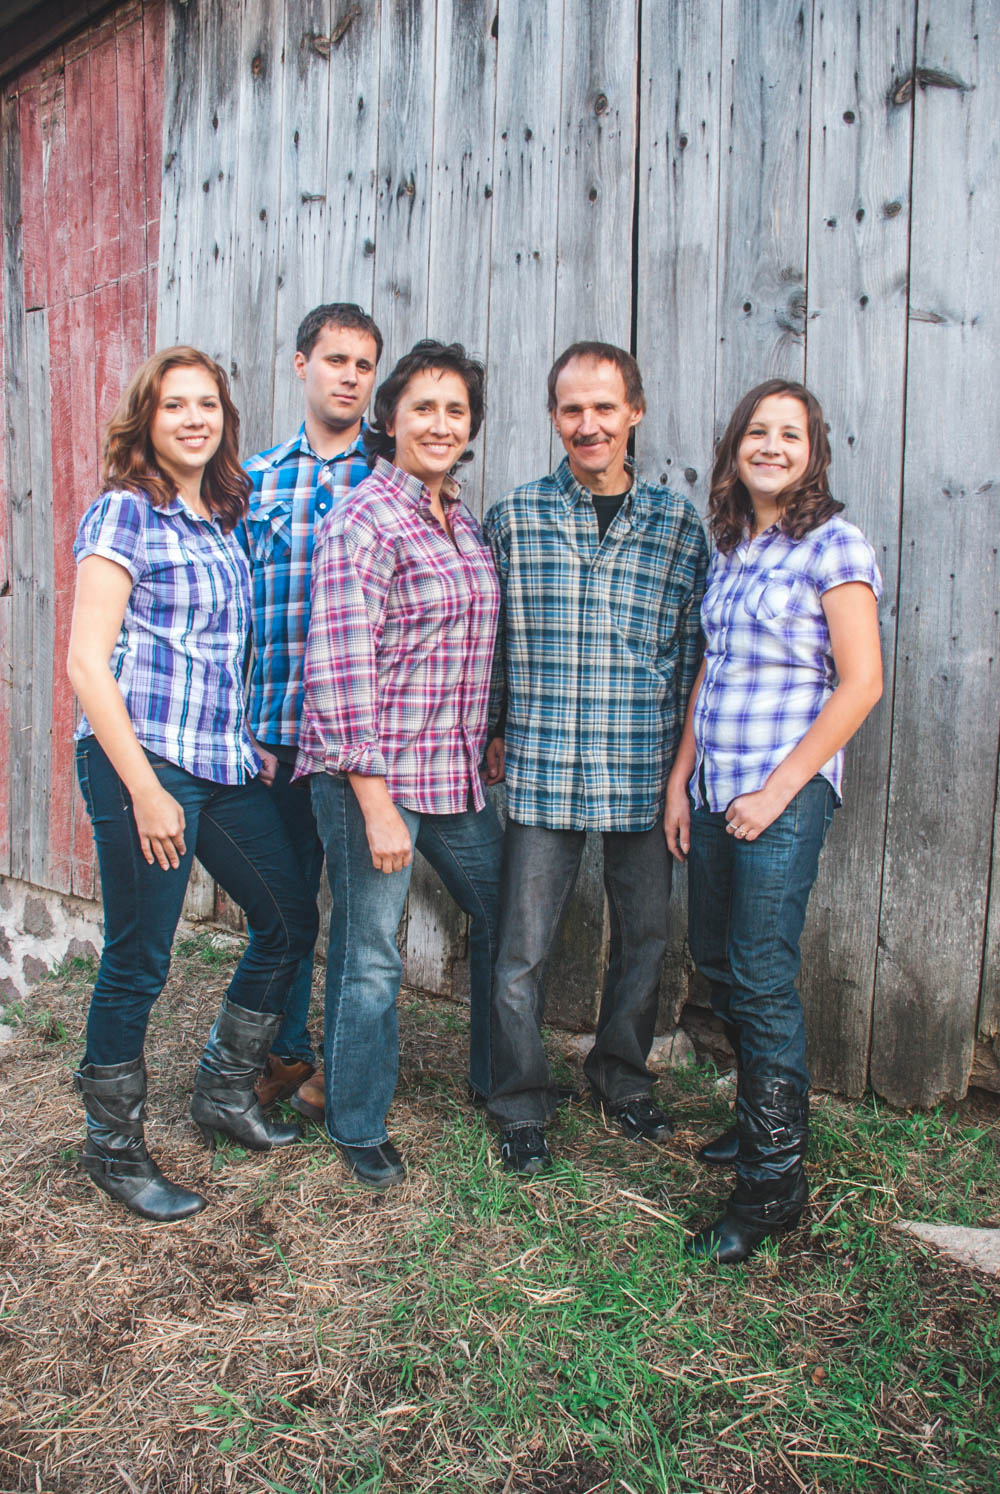 Rustic Wisconsin barn family portraits